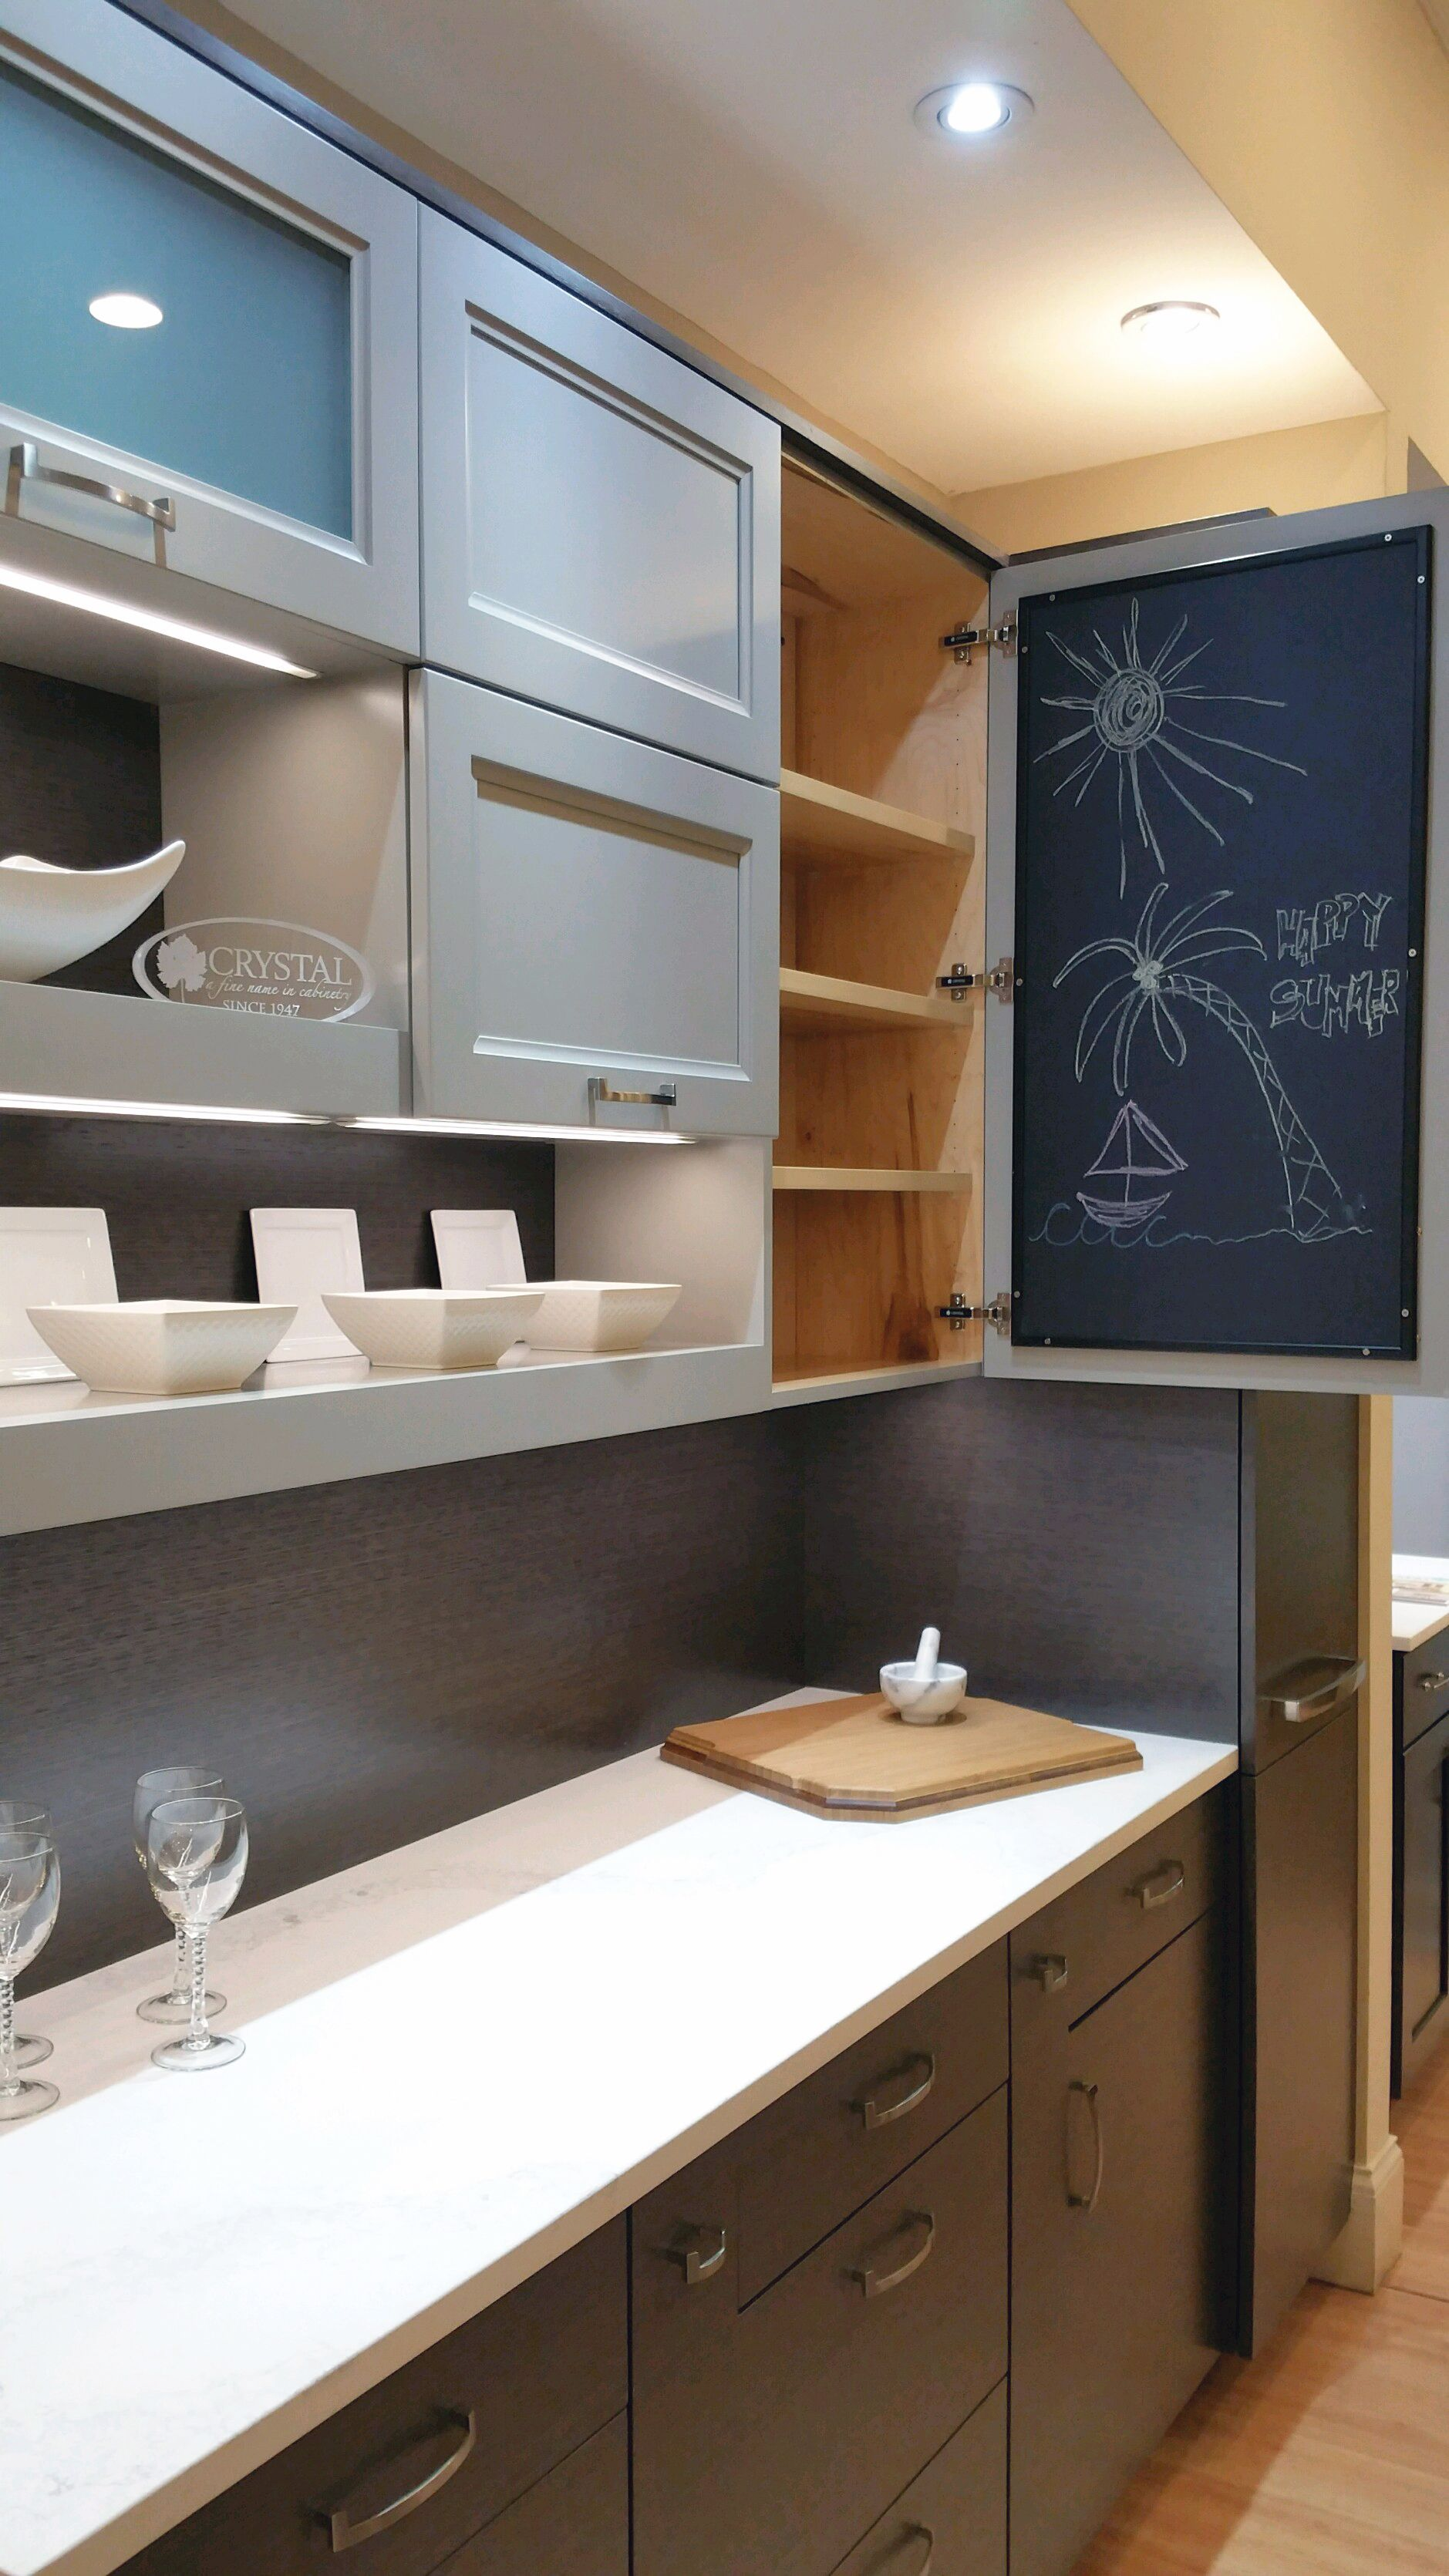 We Love This Idea From Crystal Cabinet Works... A Message Blackboard  Mounted On The Inside Of The Cabinet Door!